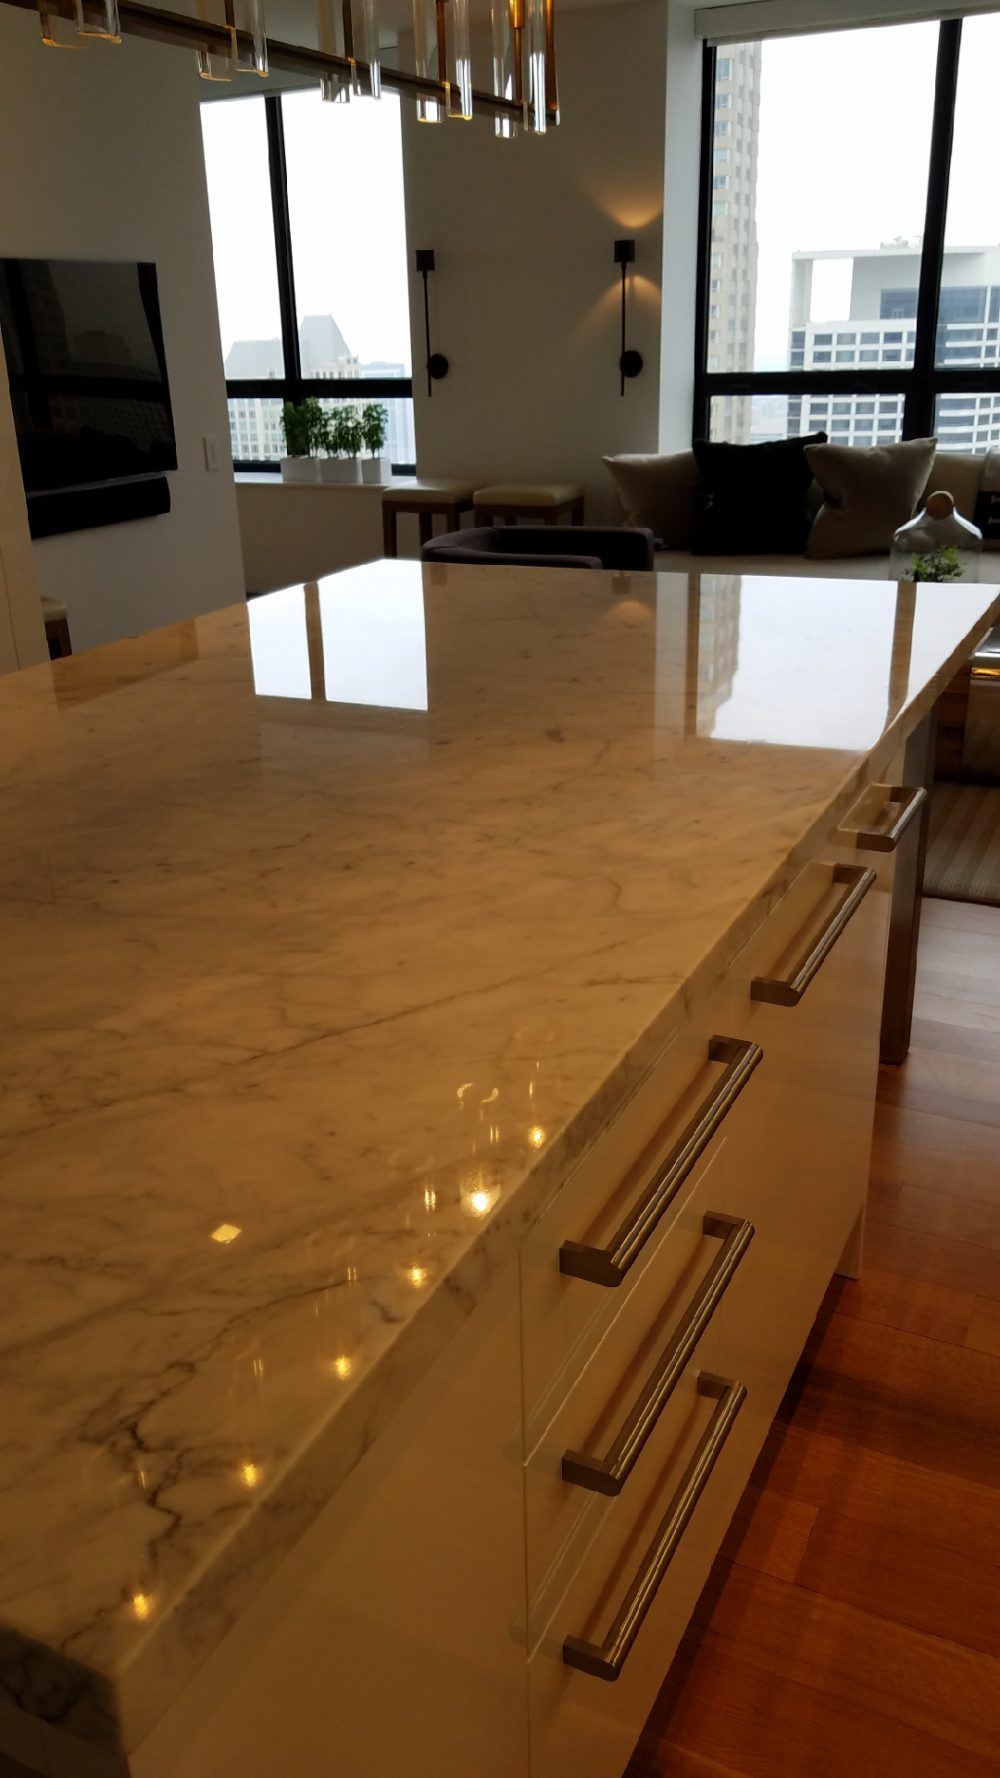 White Marble Kitchen Counter